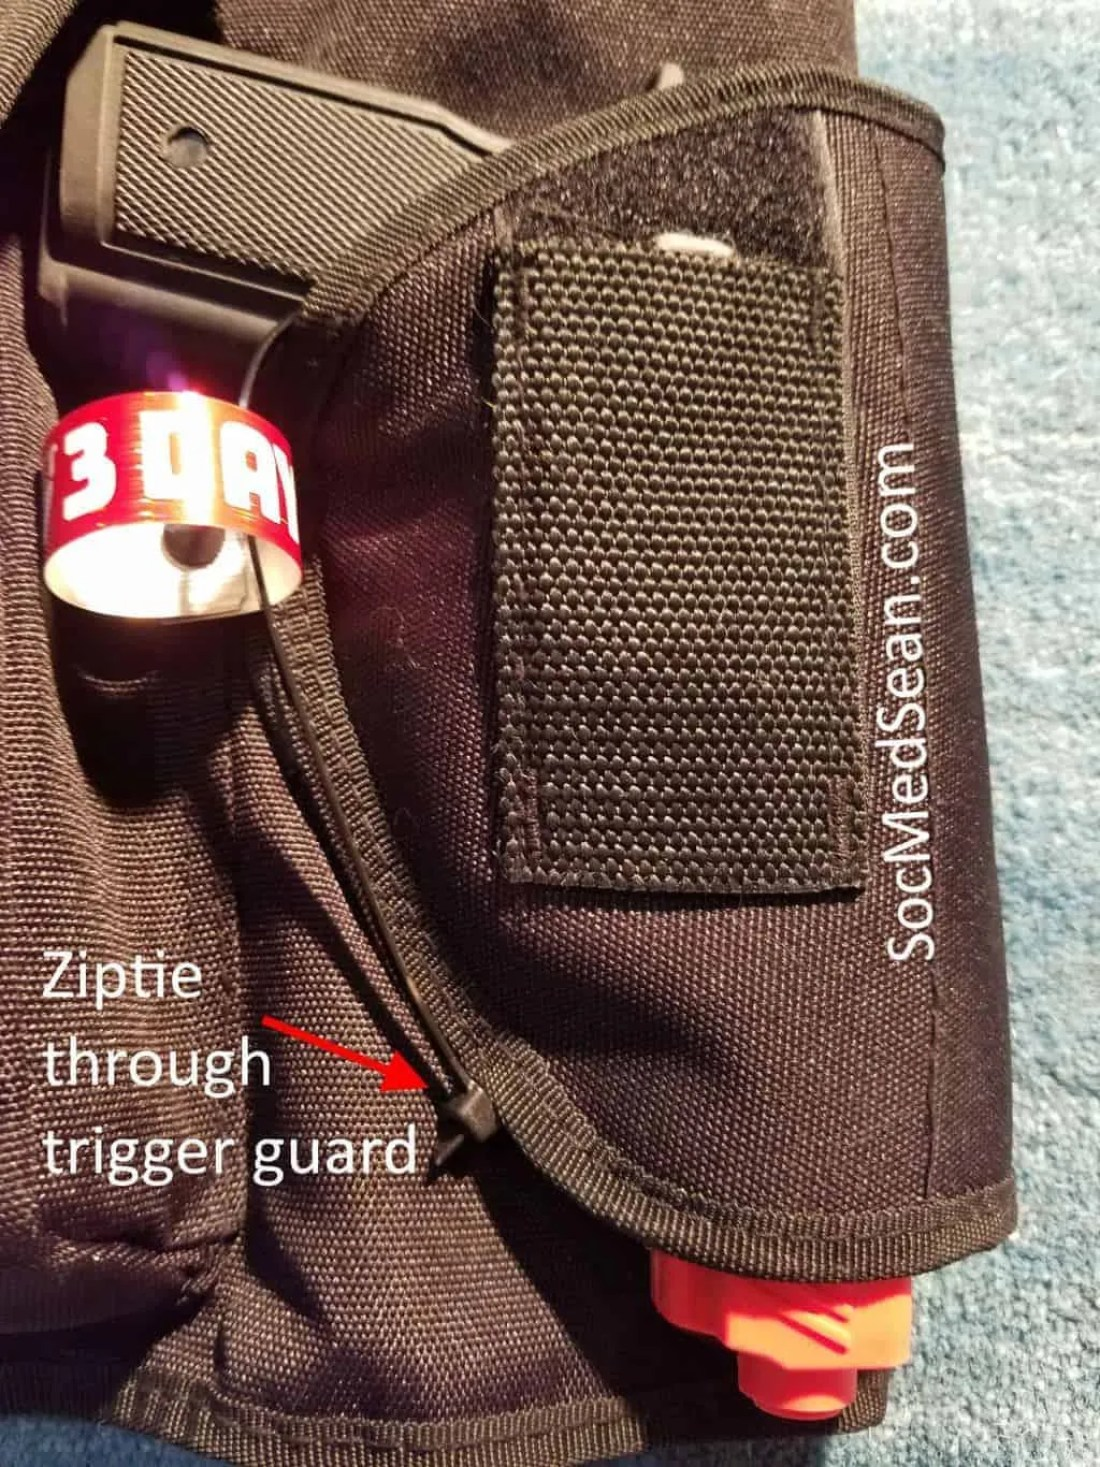 This rubber training pistol was zip-tied into the holster